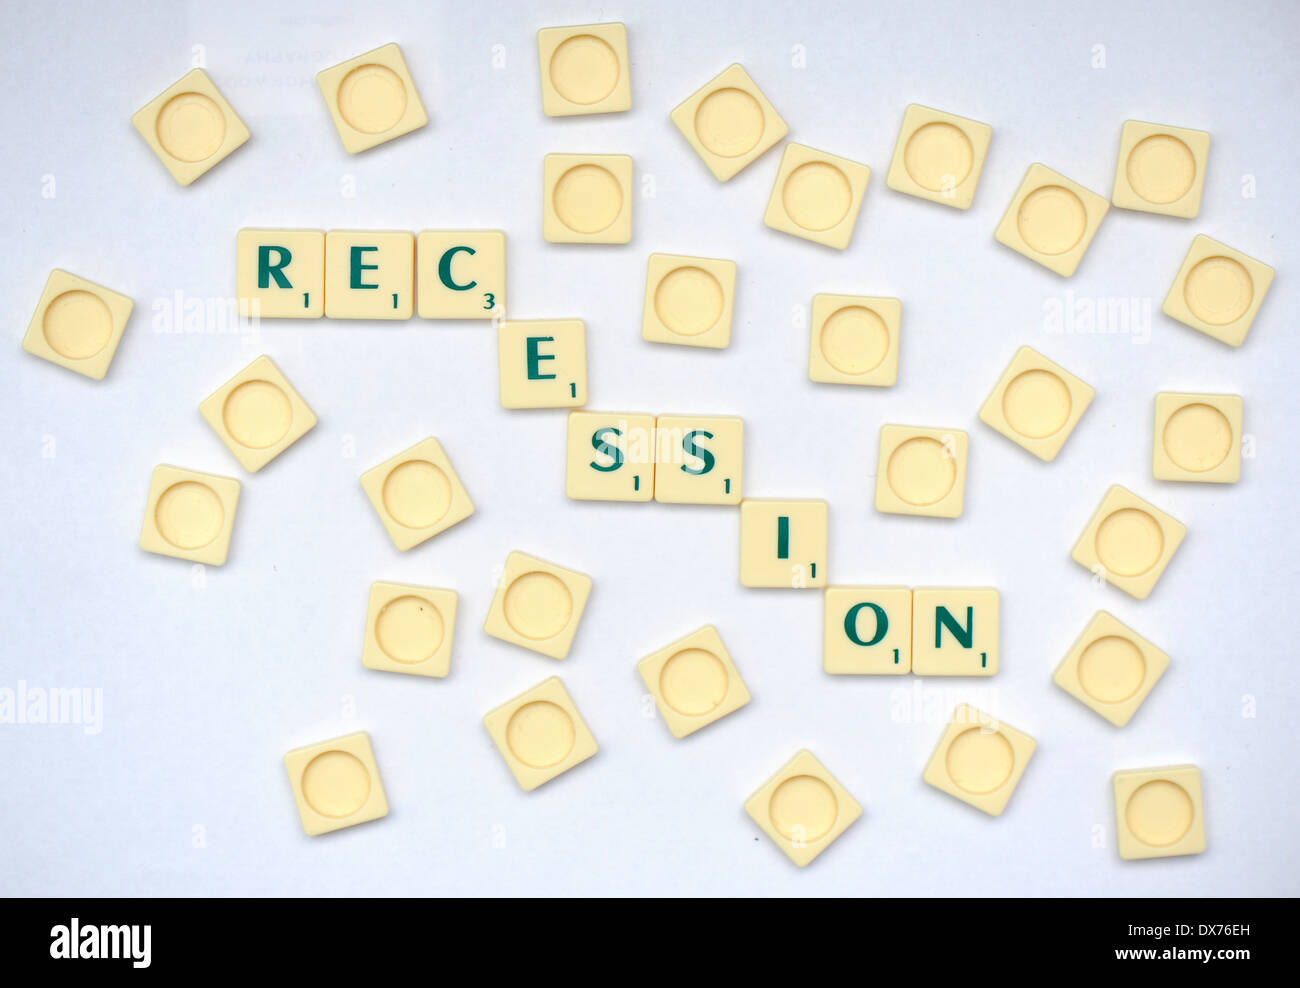 Scrabble carreaux que lire récession Photo Stock